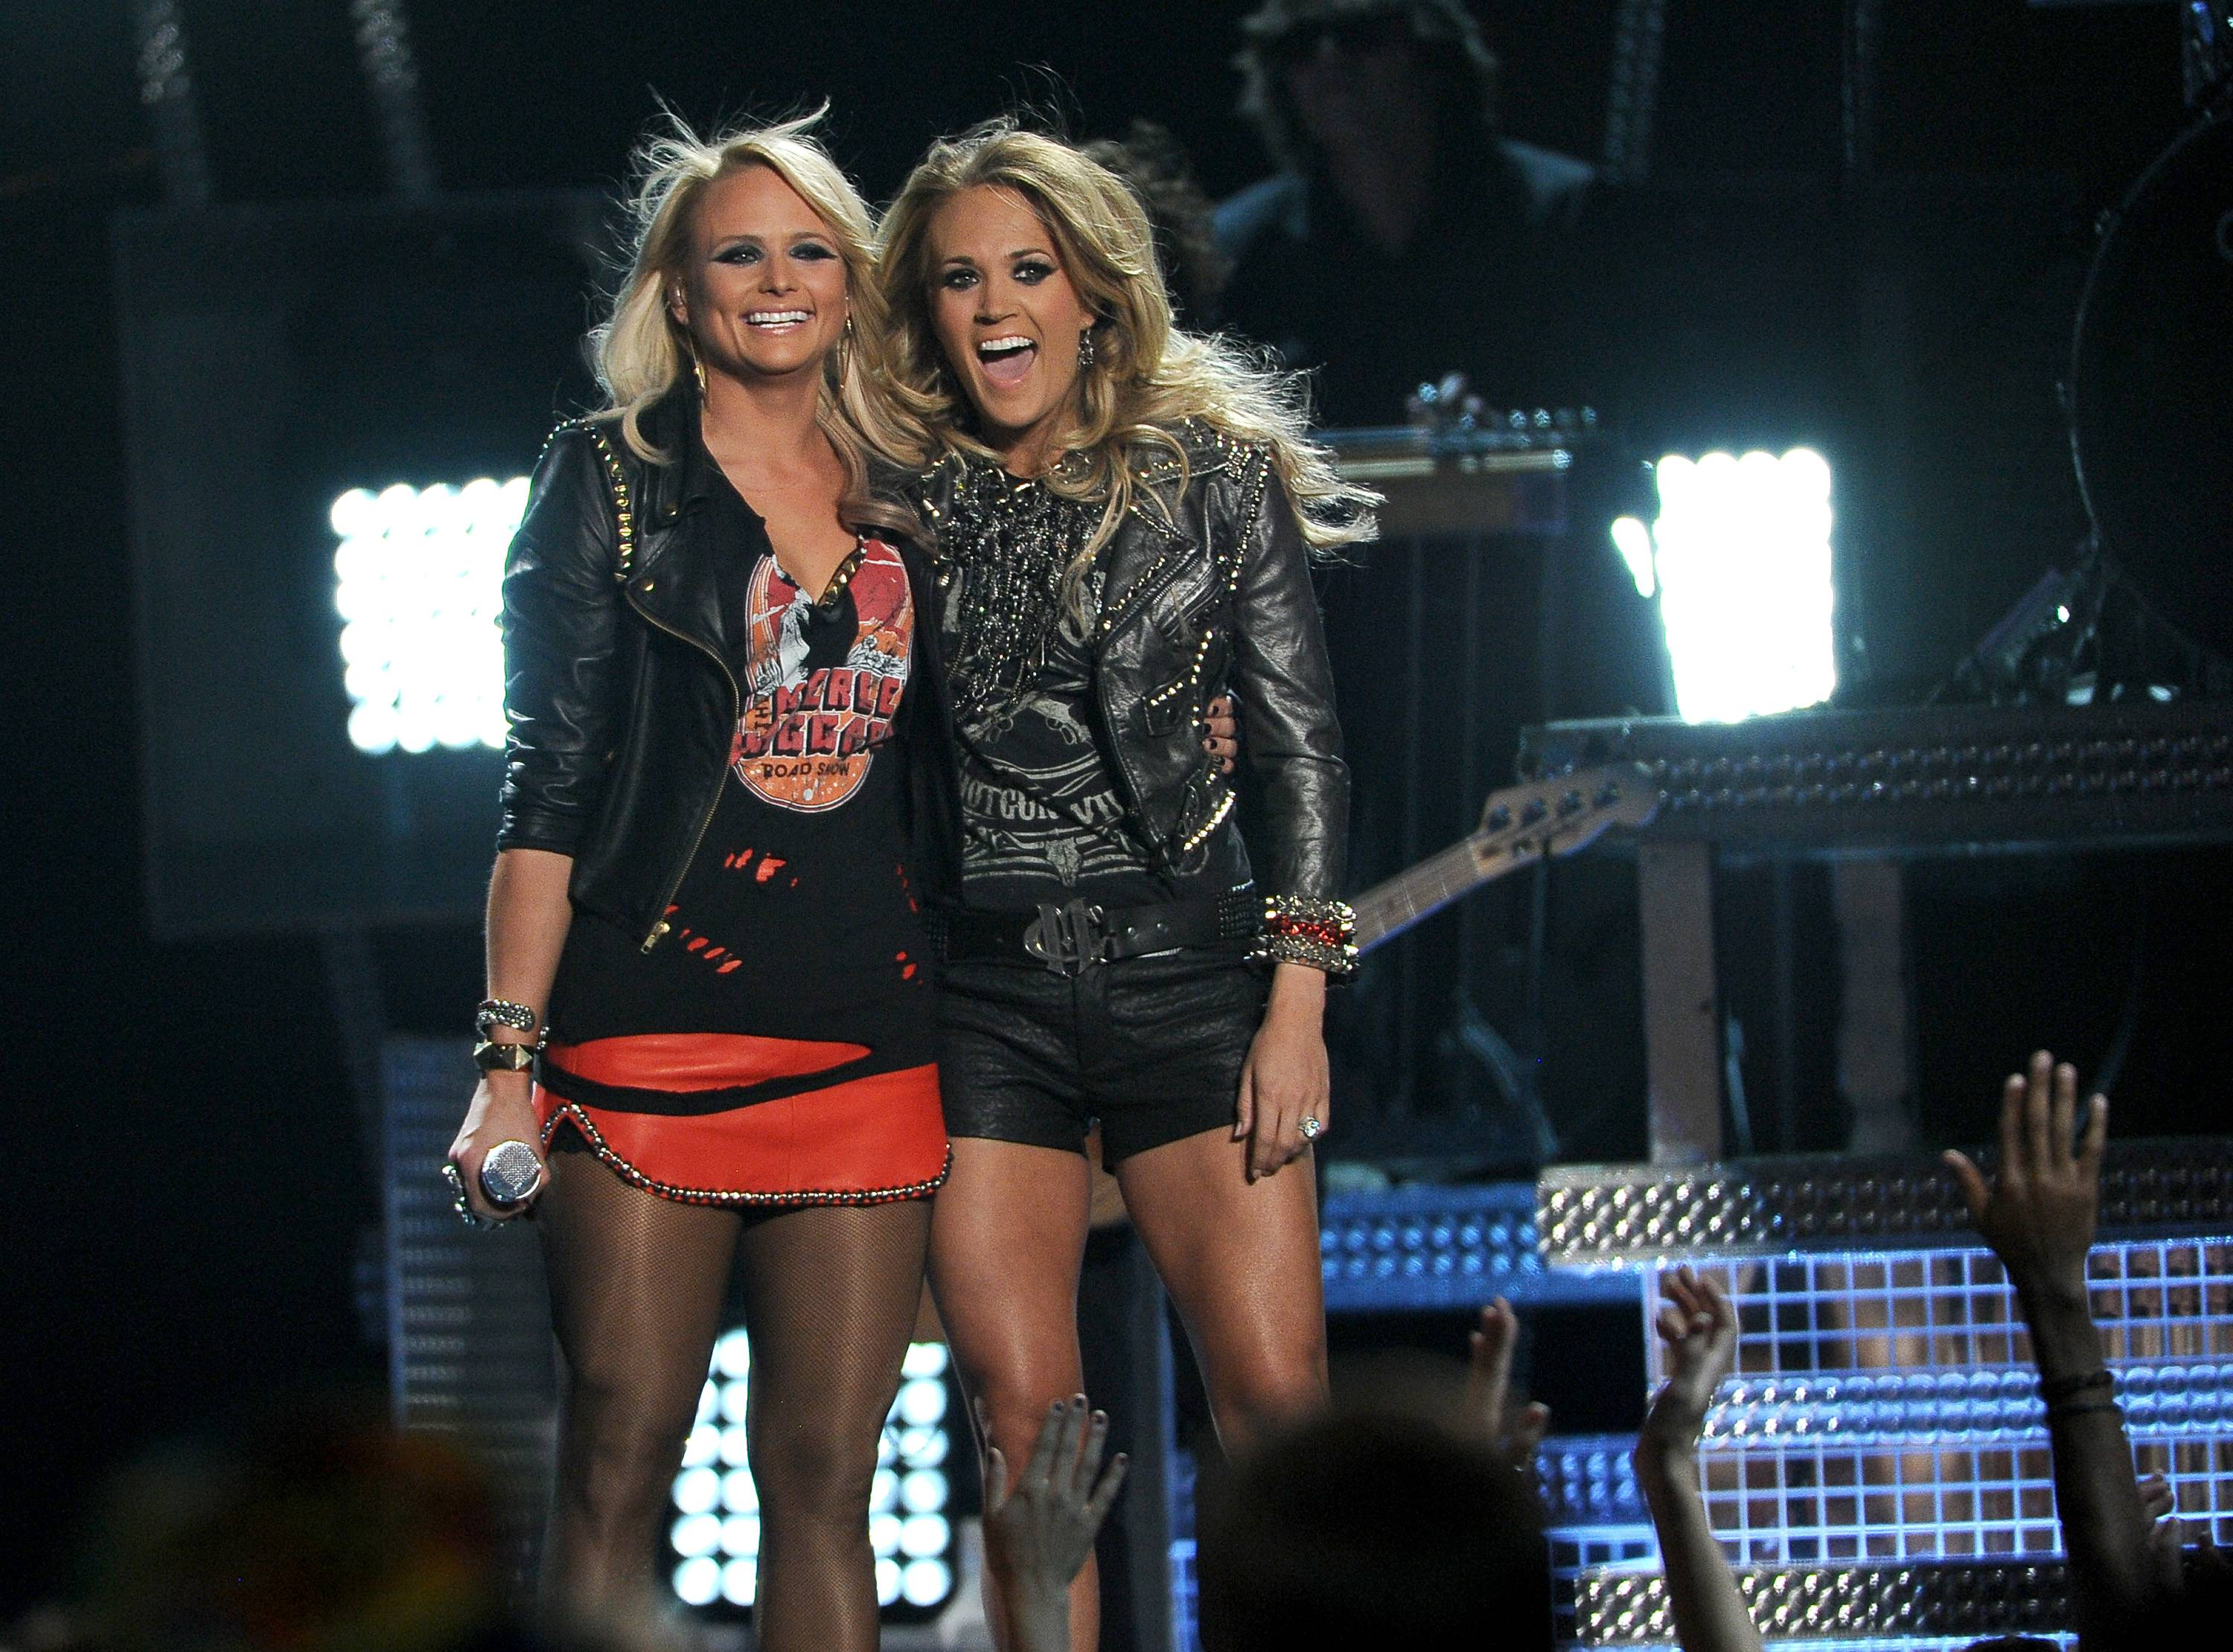 Miranda Lambert, left, and Carrie Underwood perform on stage at the Billboard Music Awards at the MGM Grand Garden Arena on Sunday, May 18, 2014, in Las Vegas.